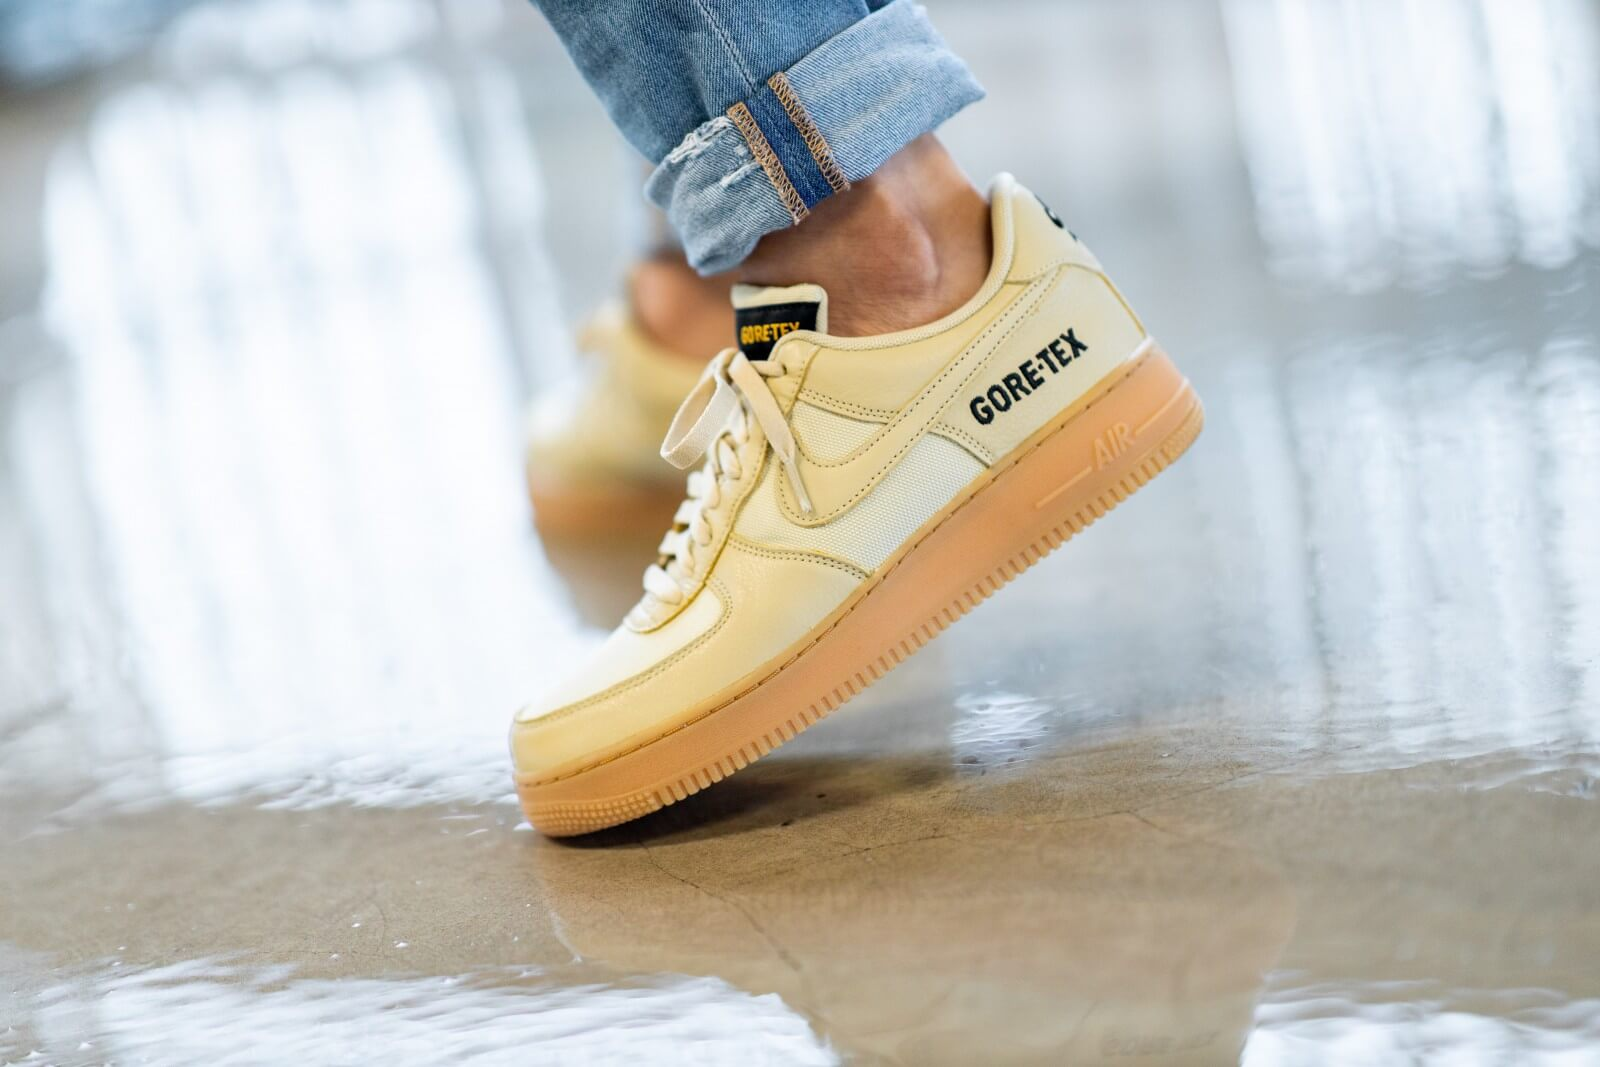 Details about Mens NIKE AIR SNEAKERS Sz 9.5 Air Force 1 07 Cream LOW TOP SHOES BEIGE WHITE